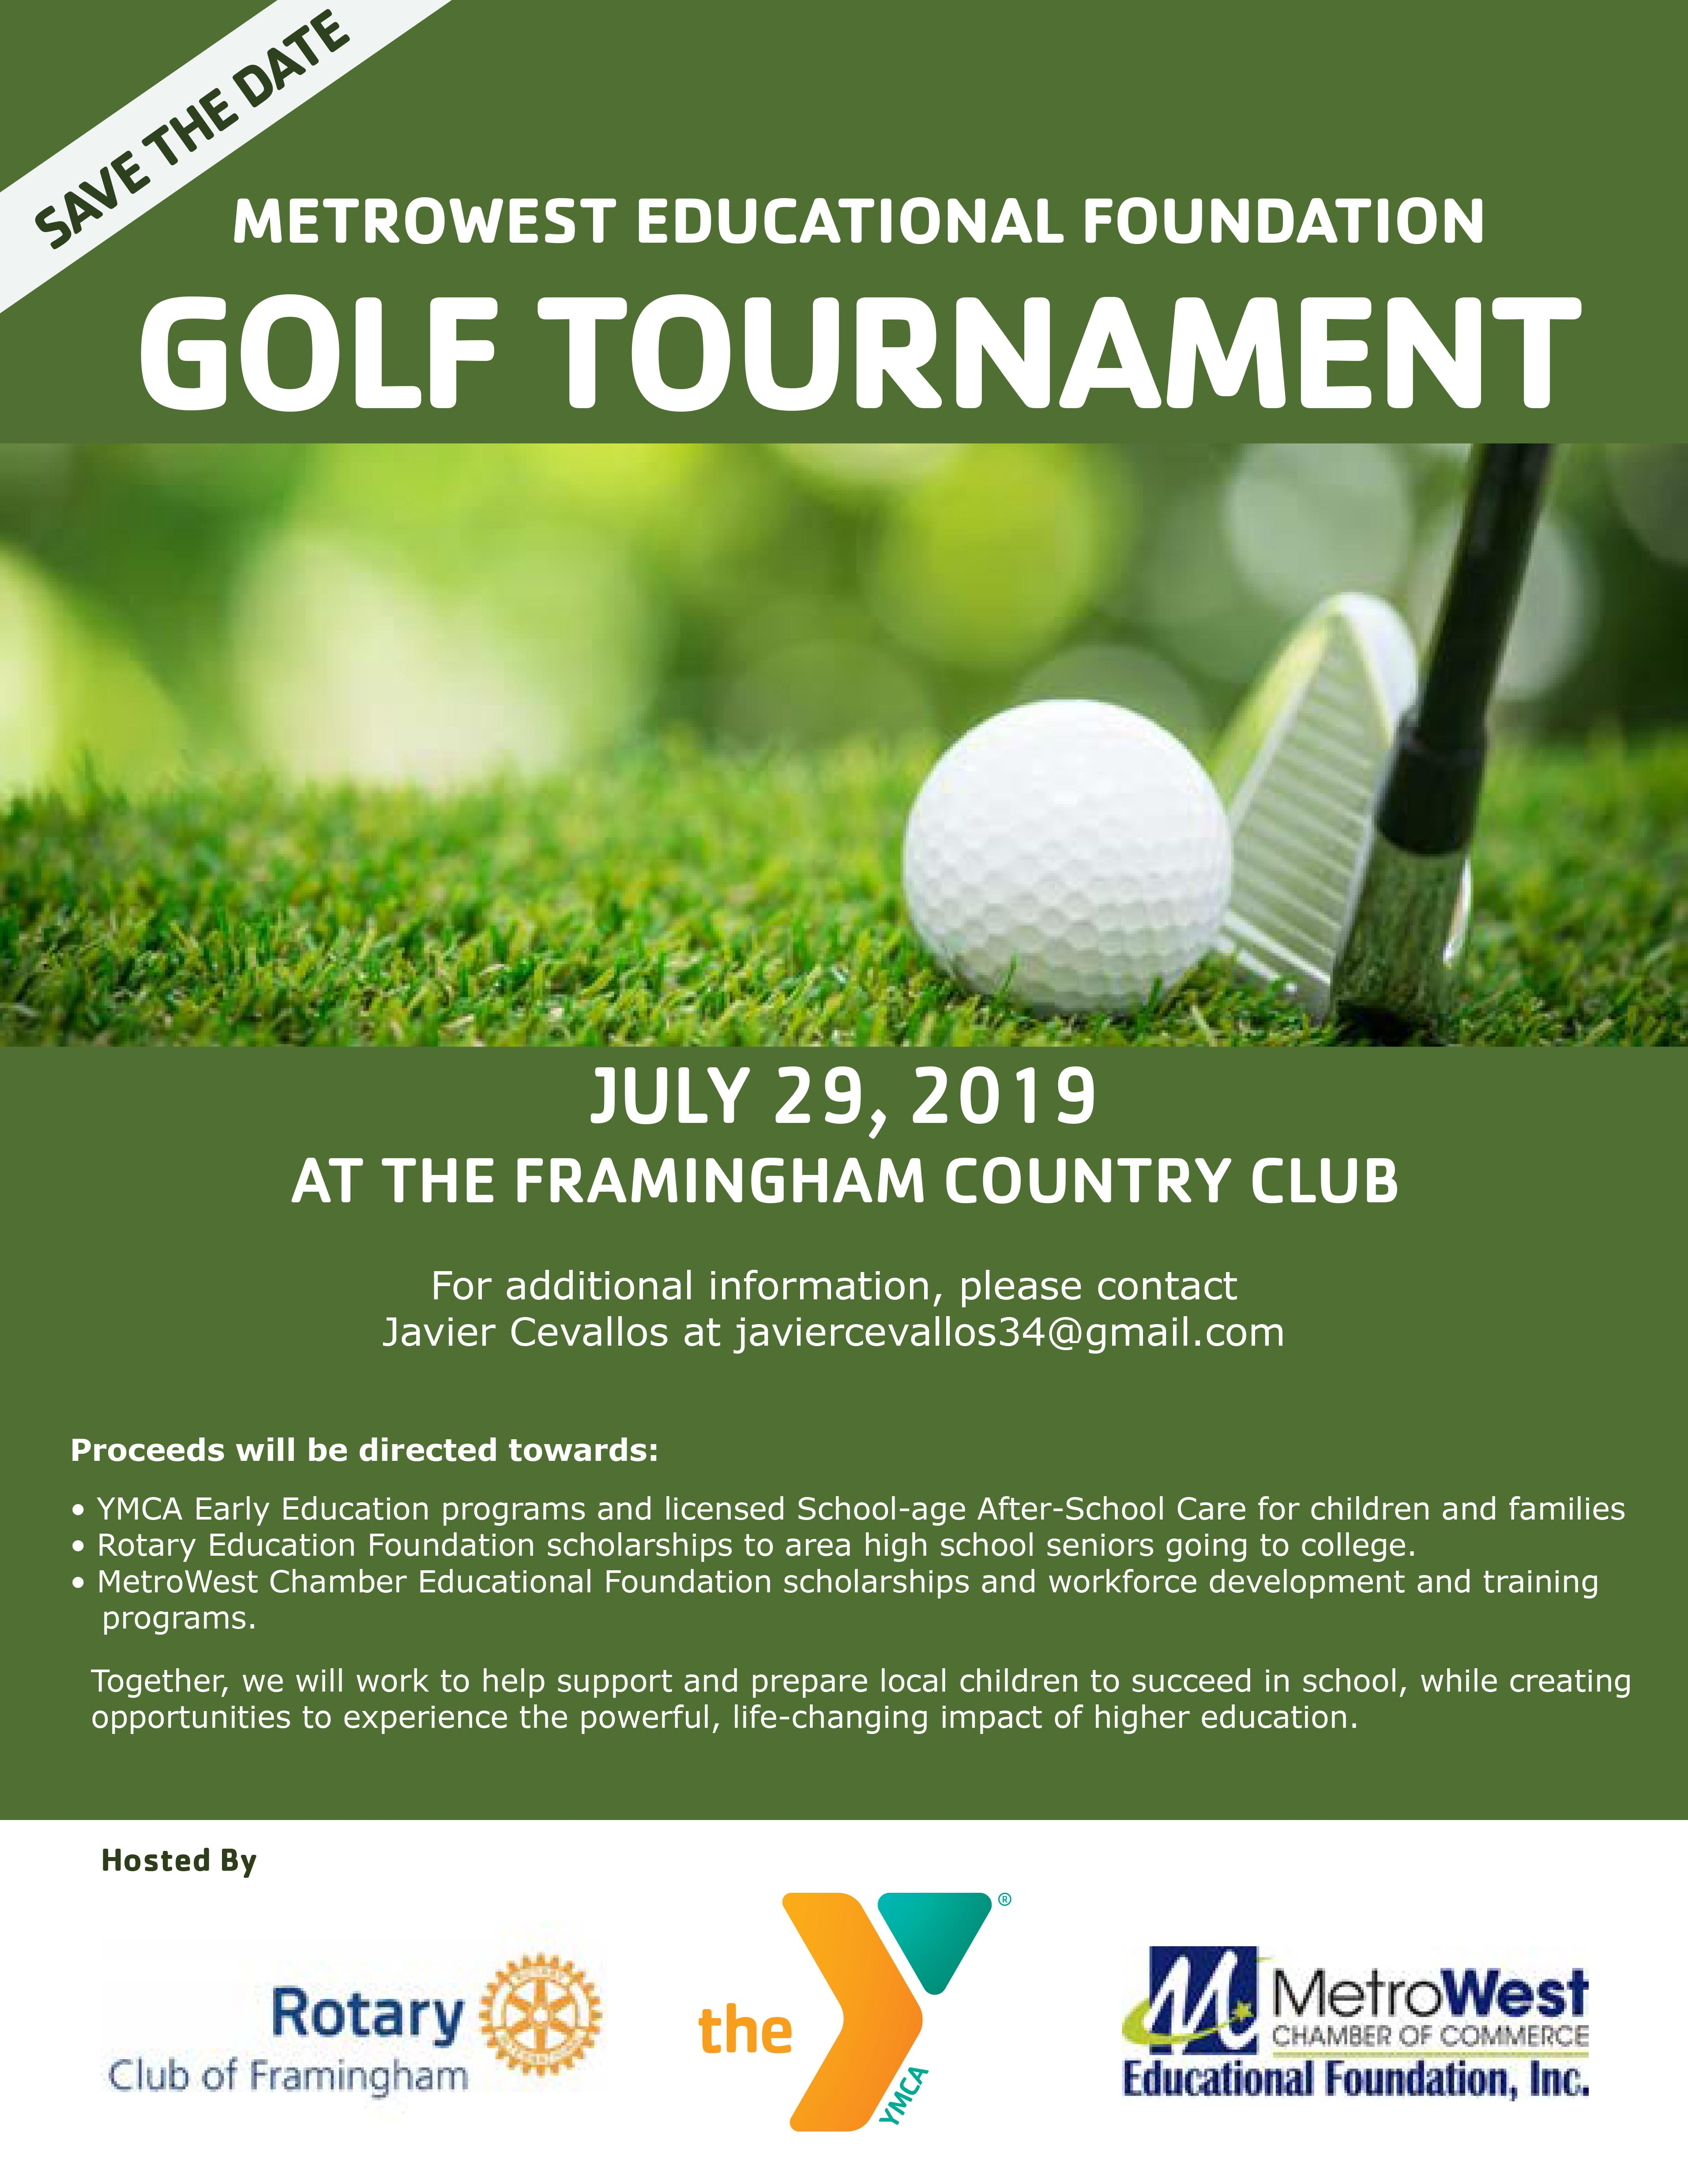 Golf-Tournament-Save-the-Date-2019-poster.jpg